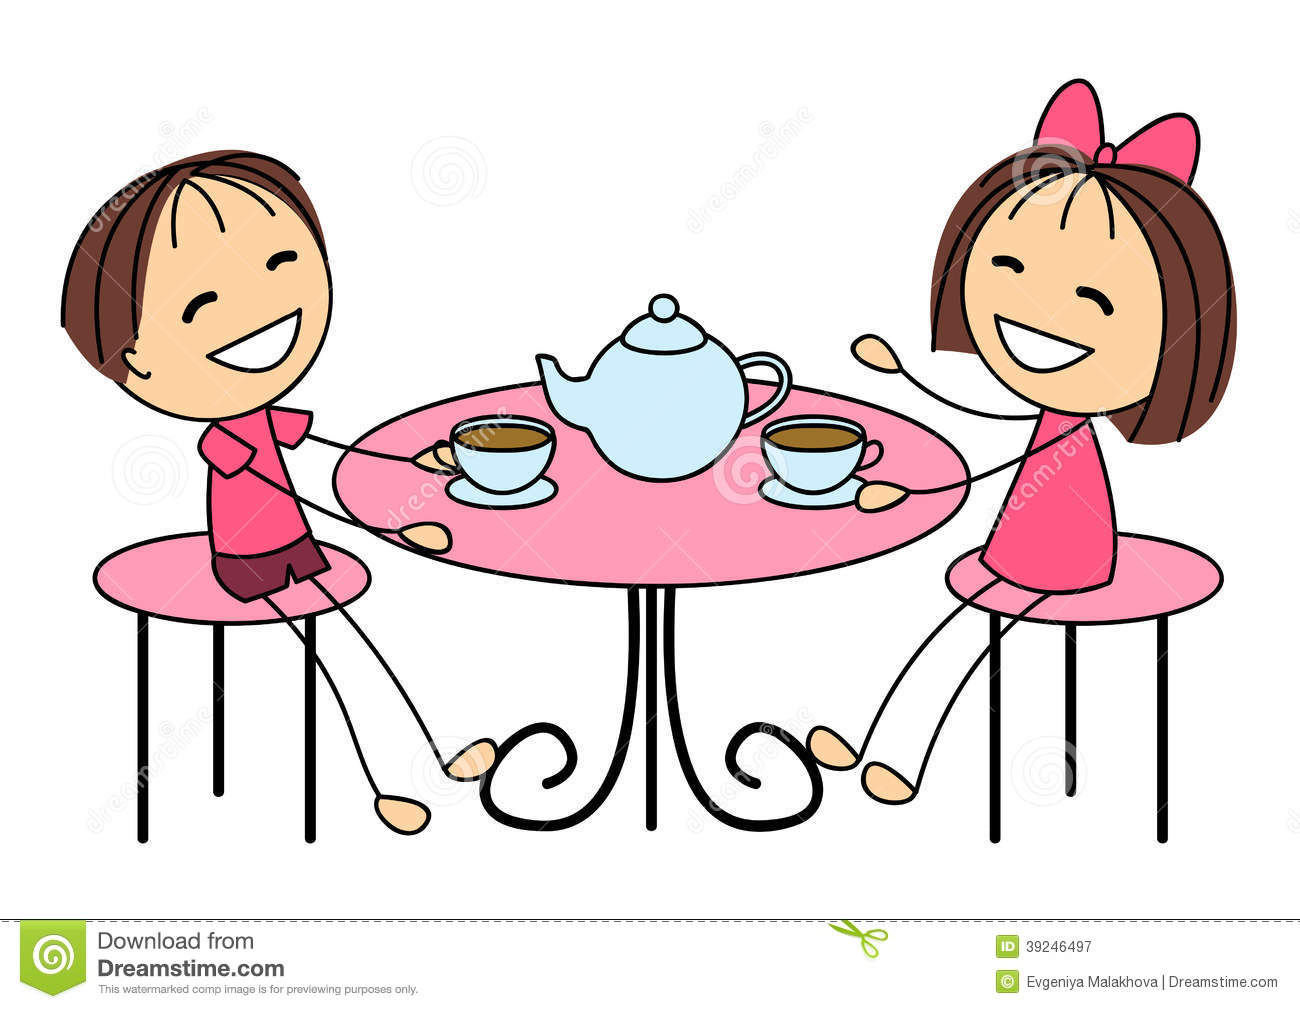 Cute Little Kids Drinking Tea Stock Vector - Image: 39246497